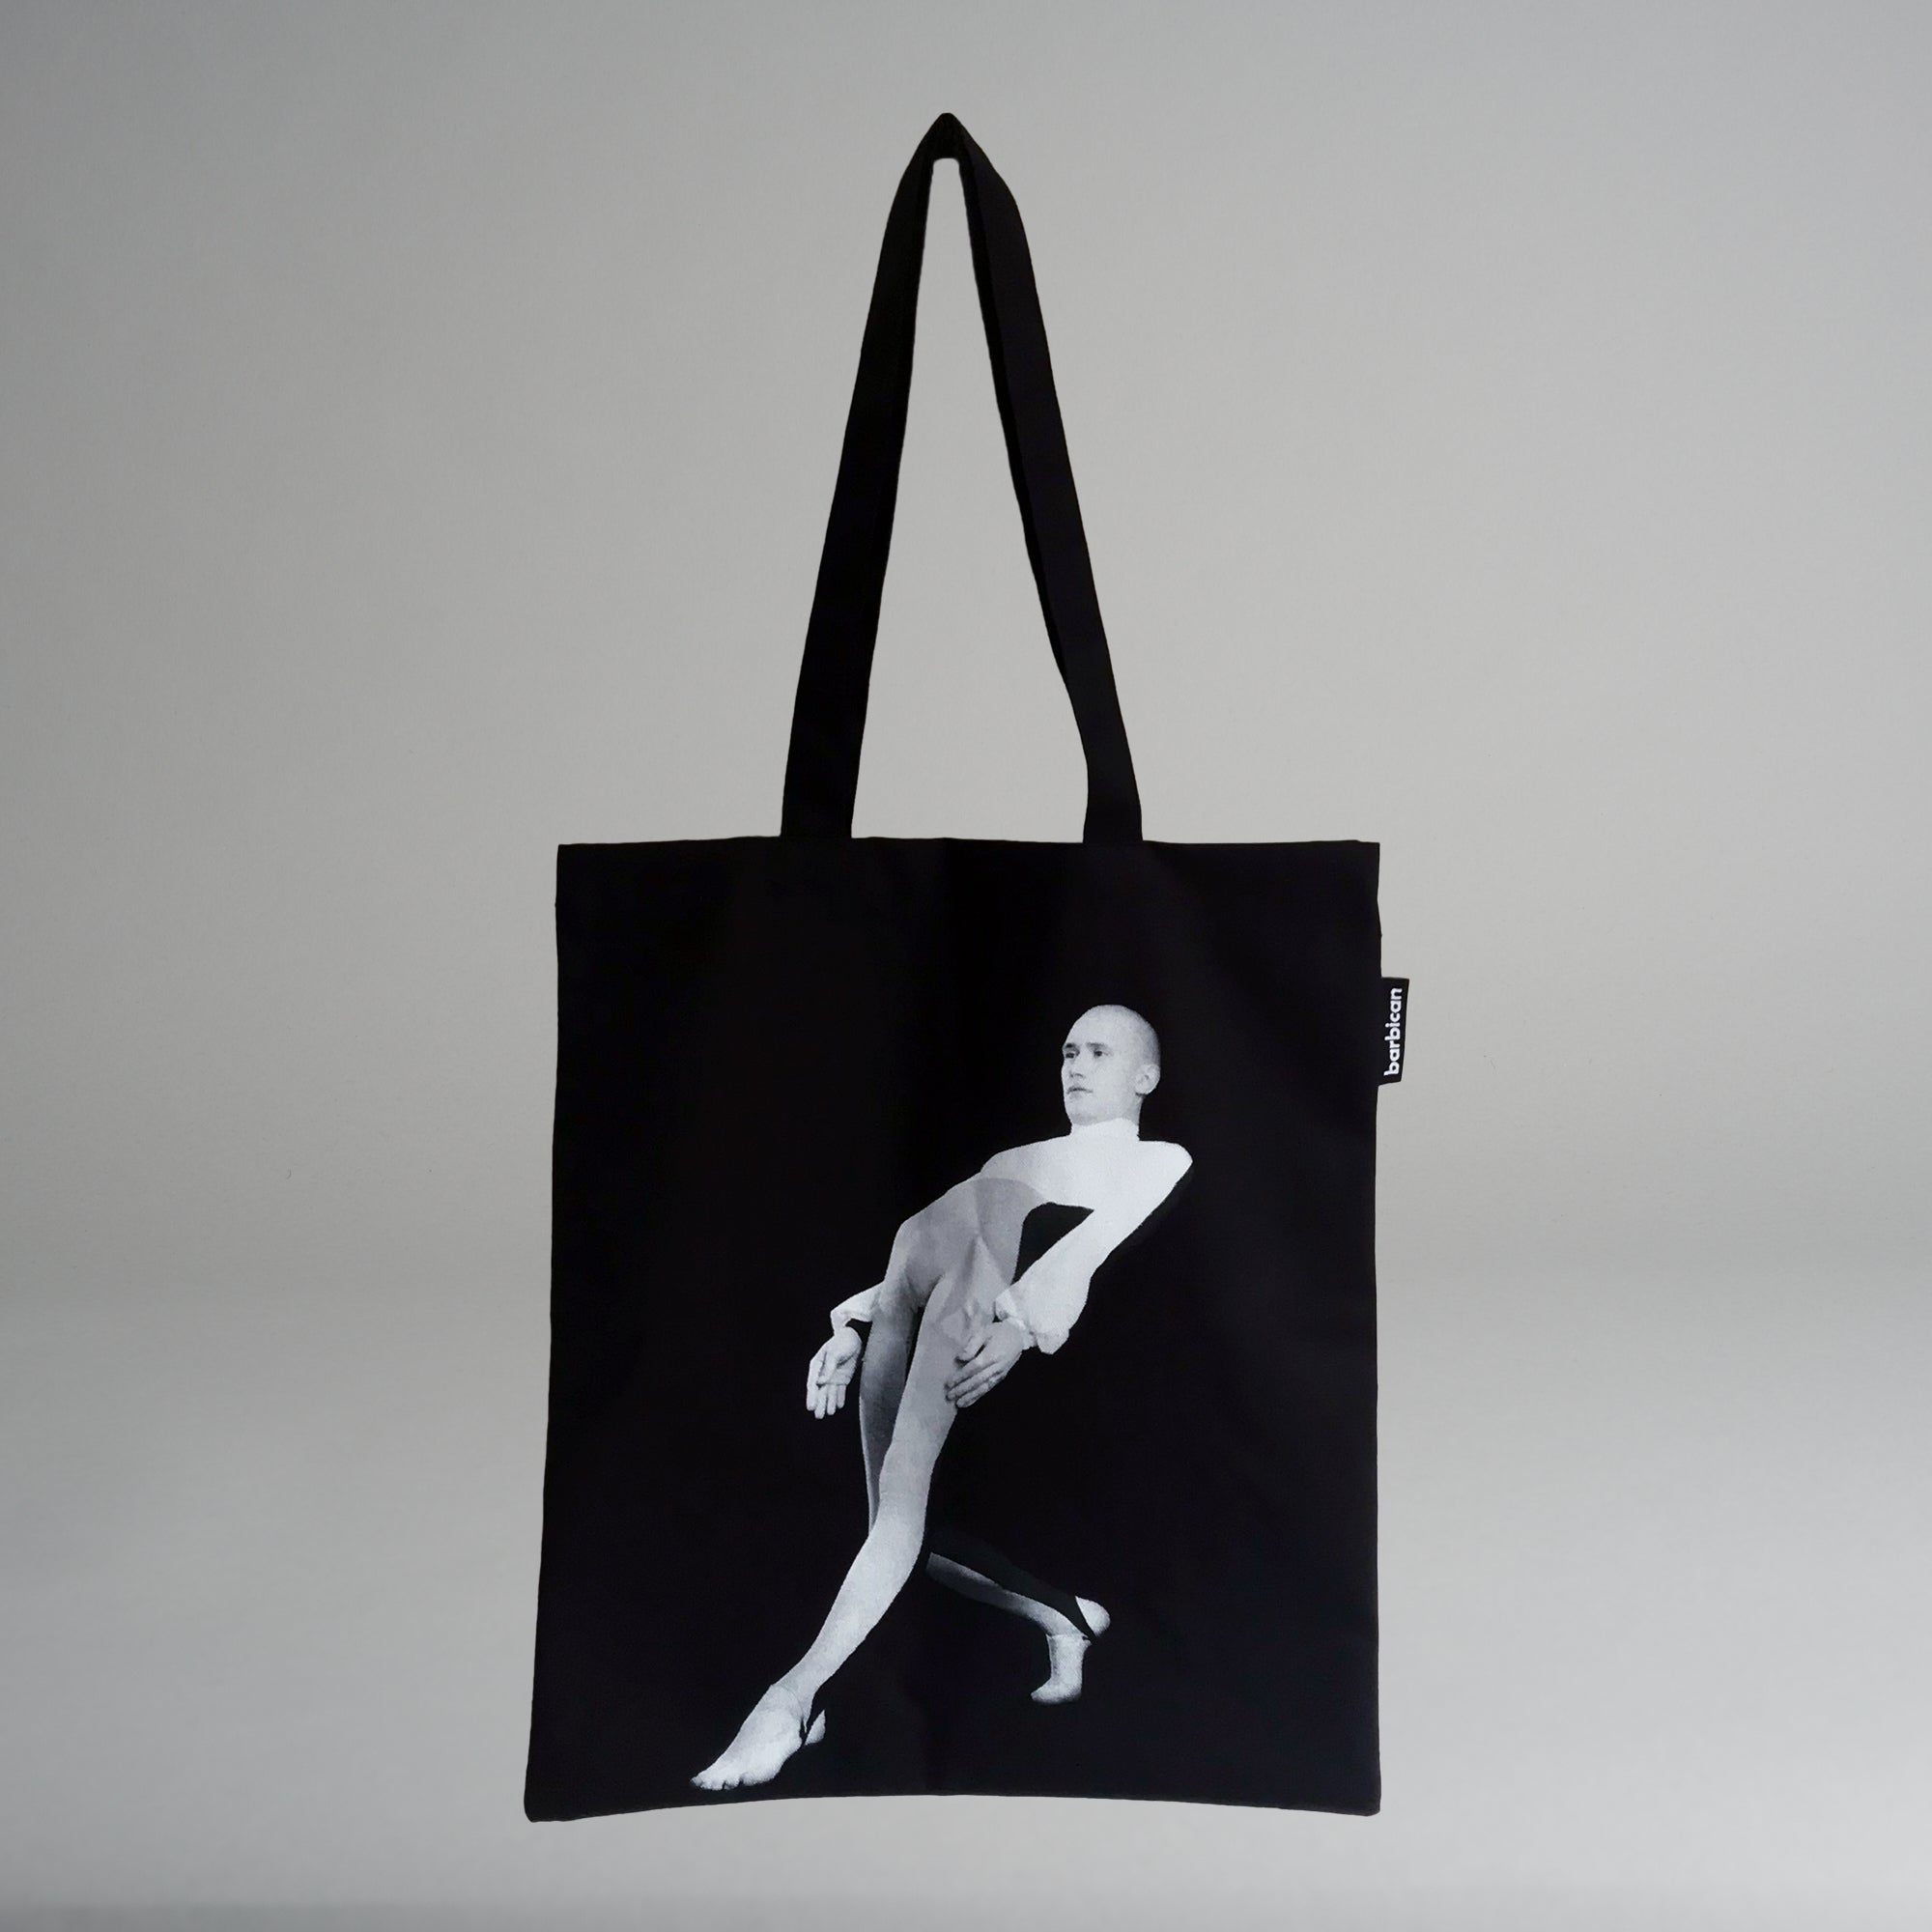 Michael Clark Tote Bag